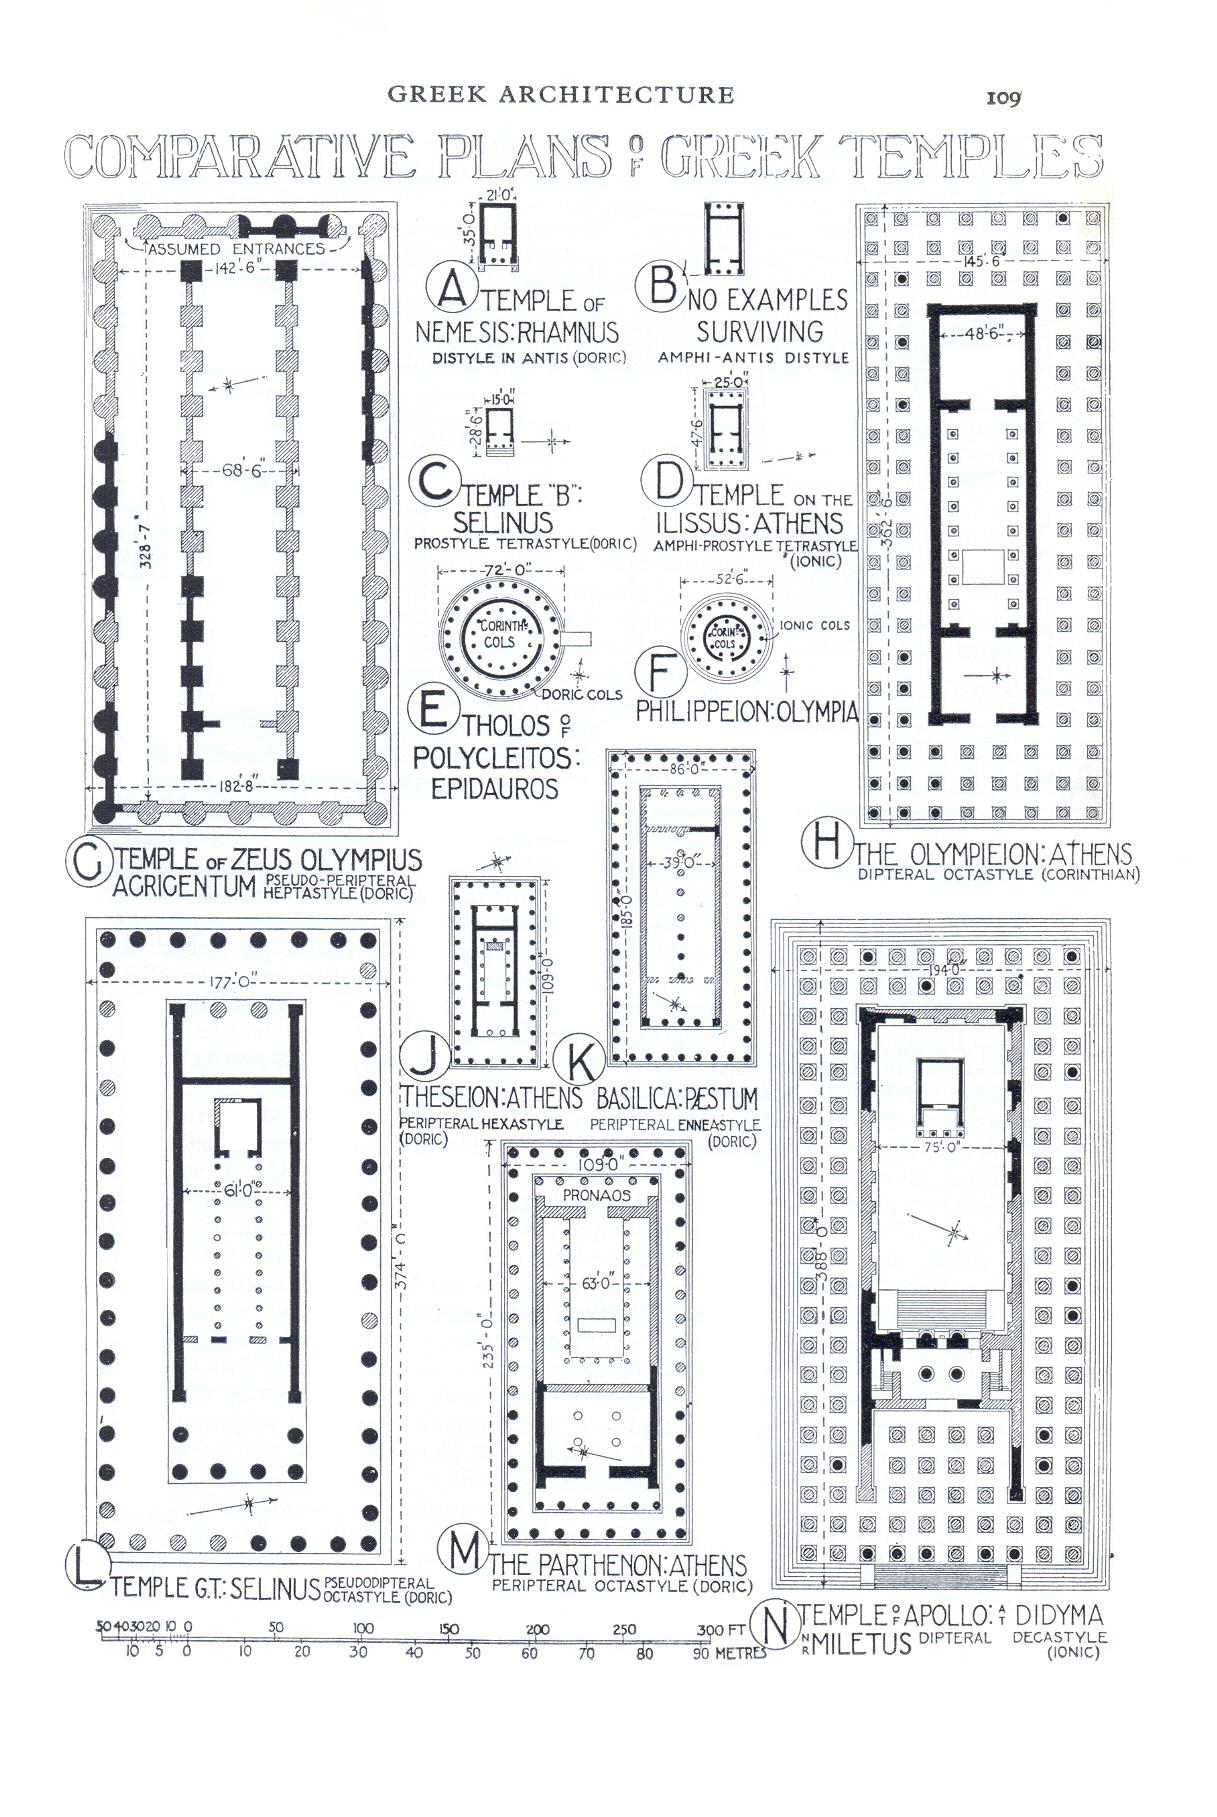 File Comparative Plans Of Greek Temples 107